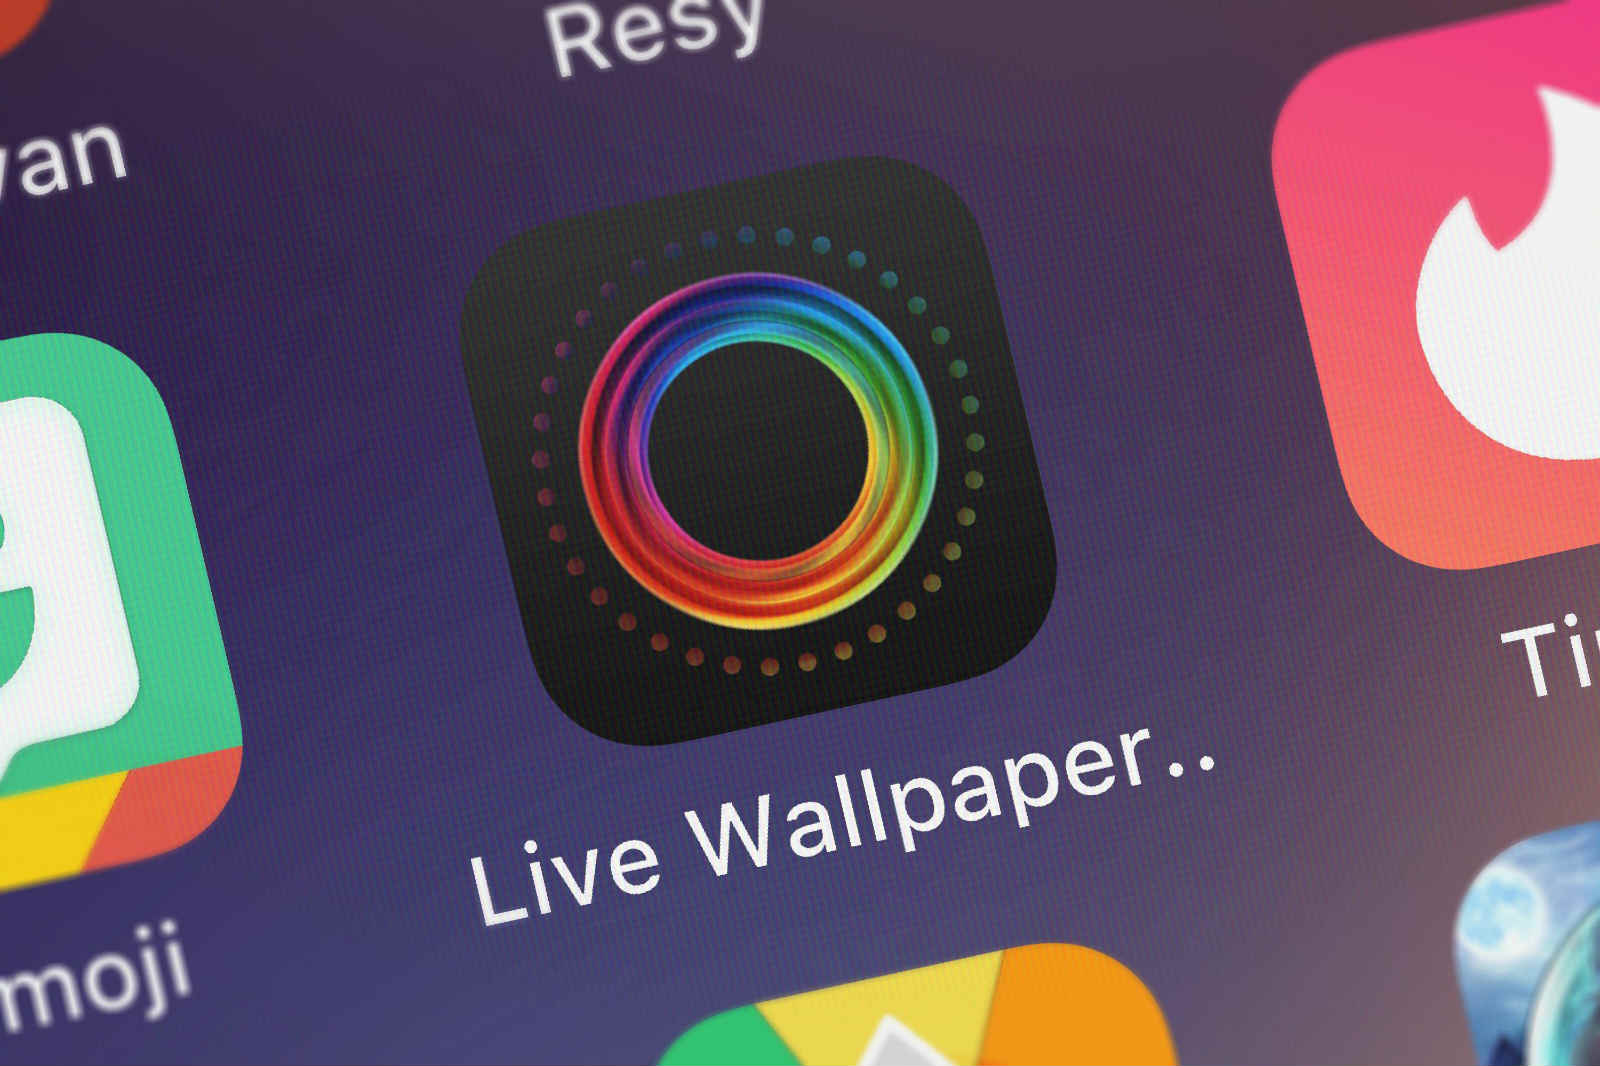 Live Wallpaper Apps